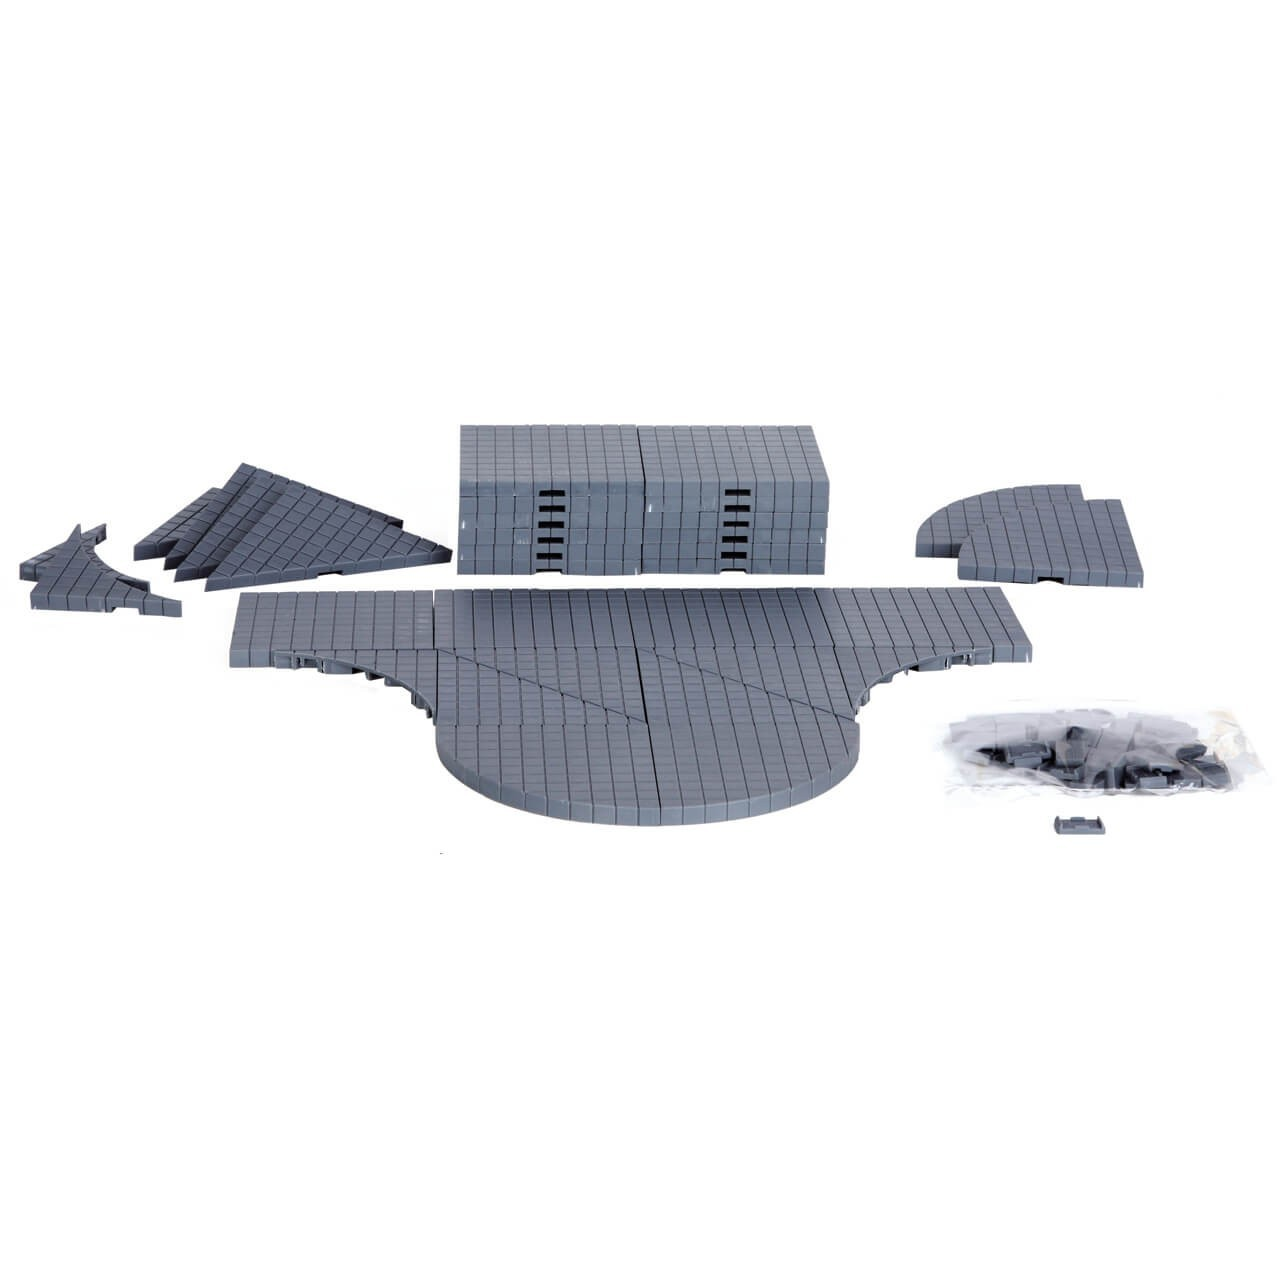 plaza system grey LEMAX from alles mini